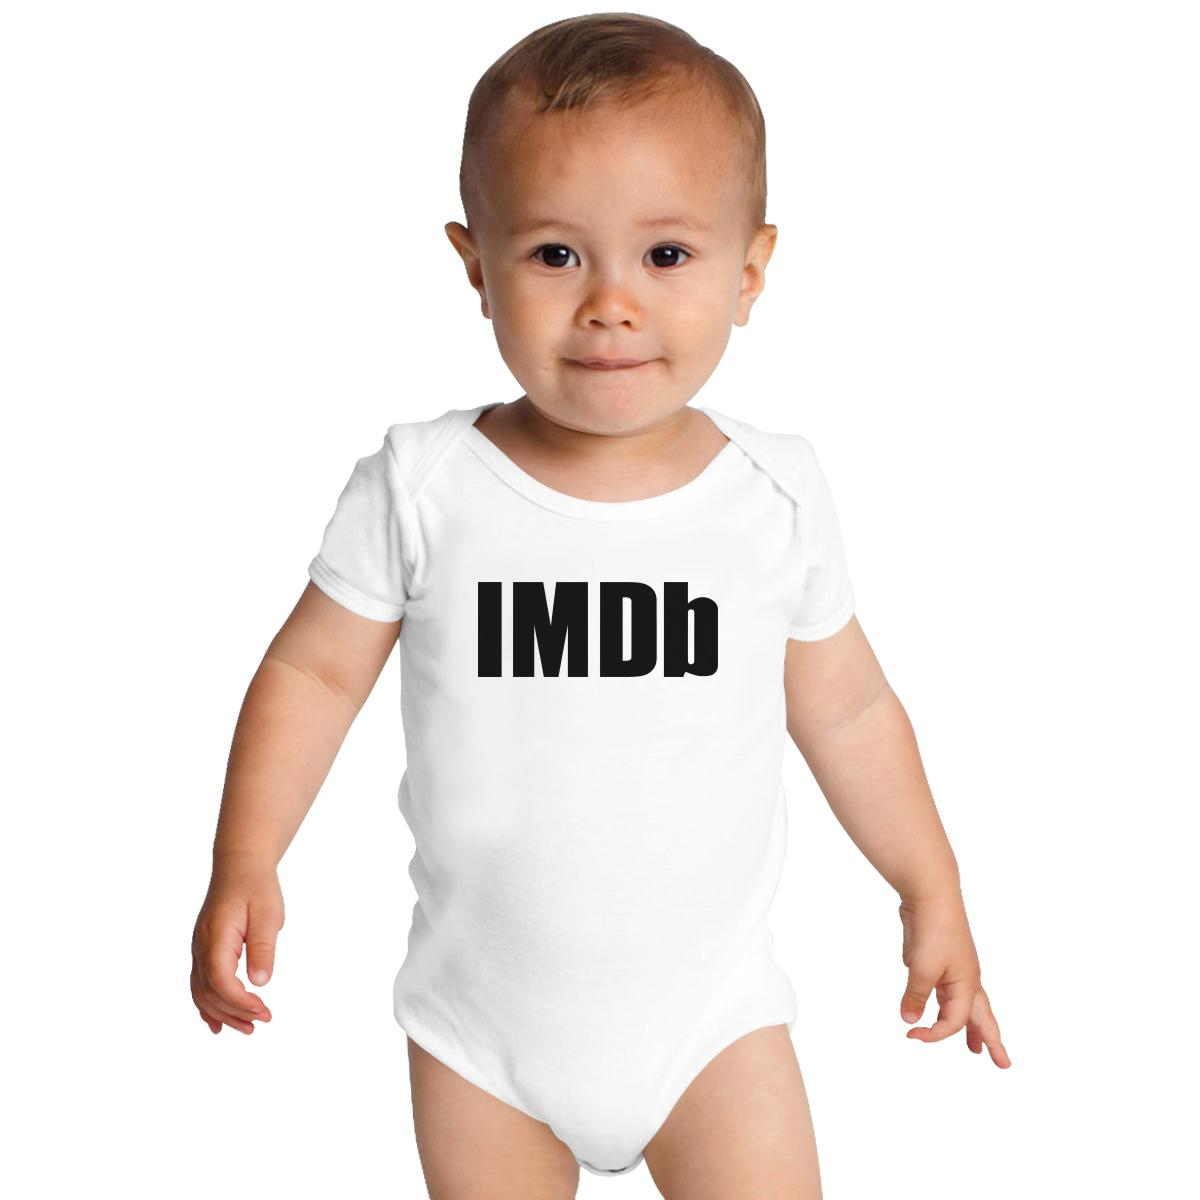 IMDb Logo Baby Onesies | Customon.com